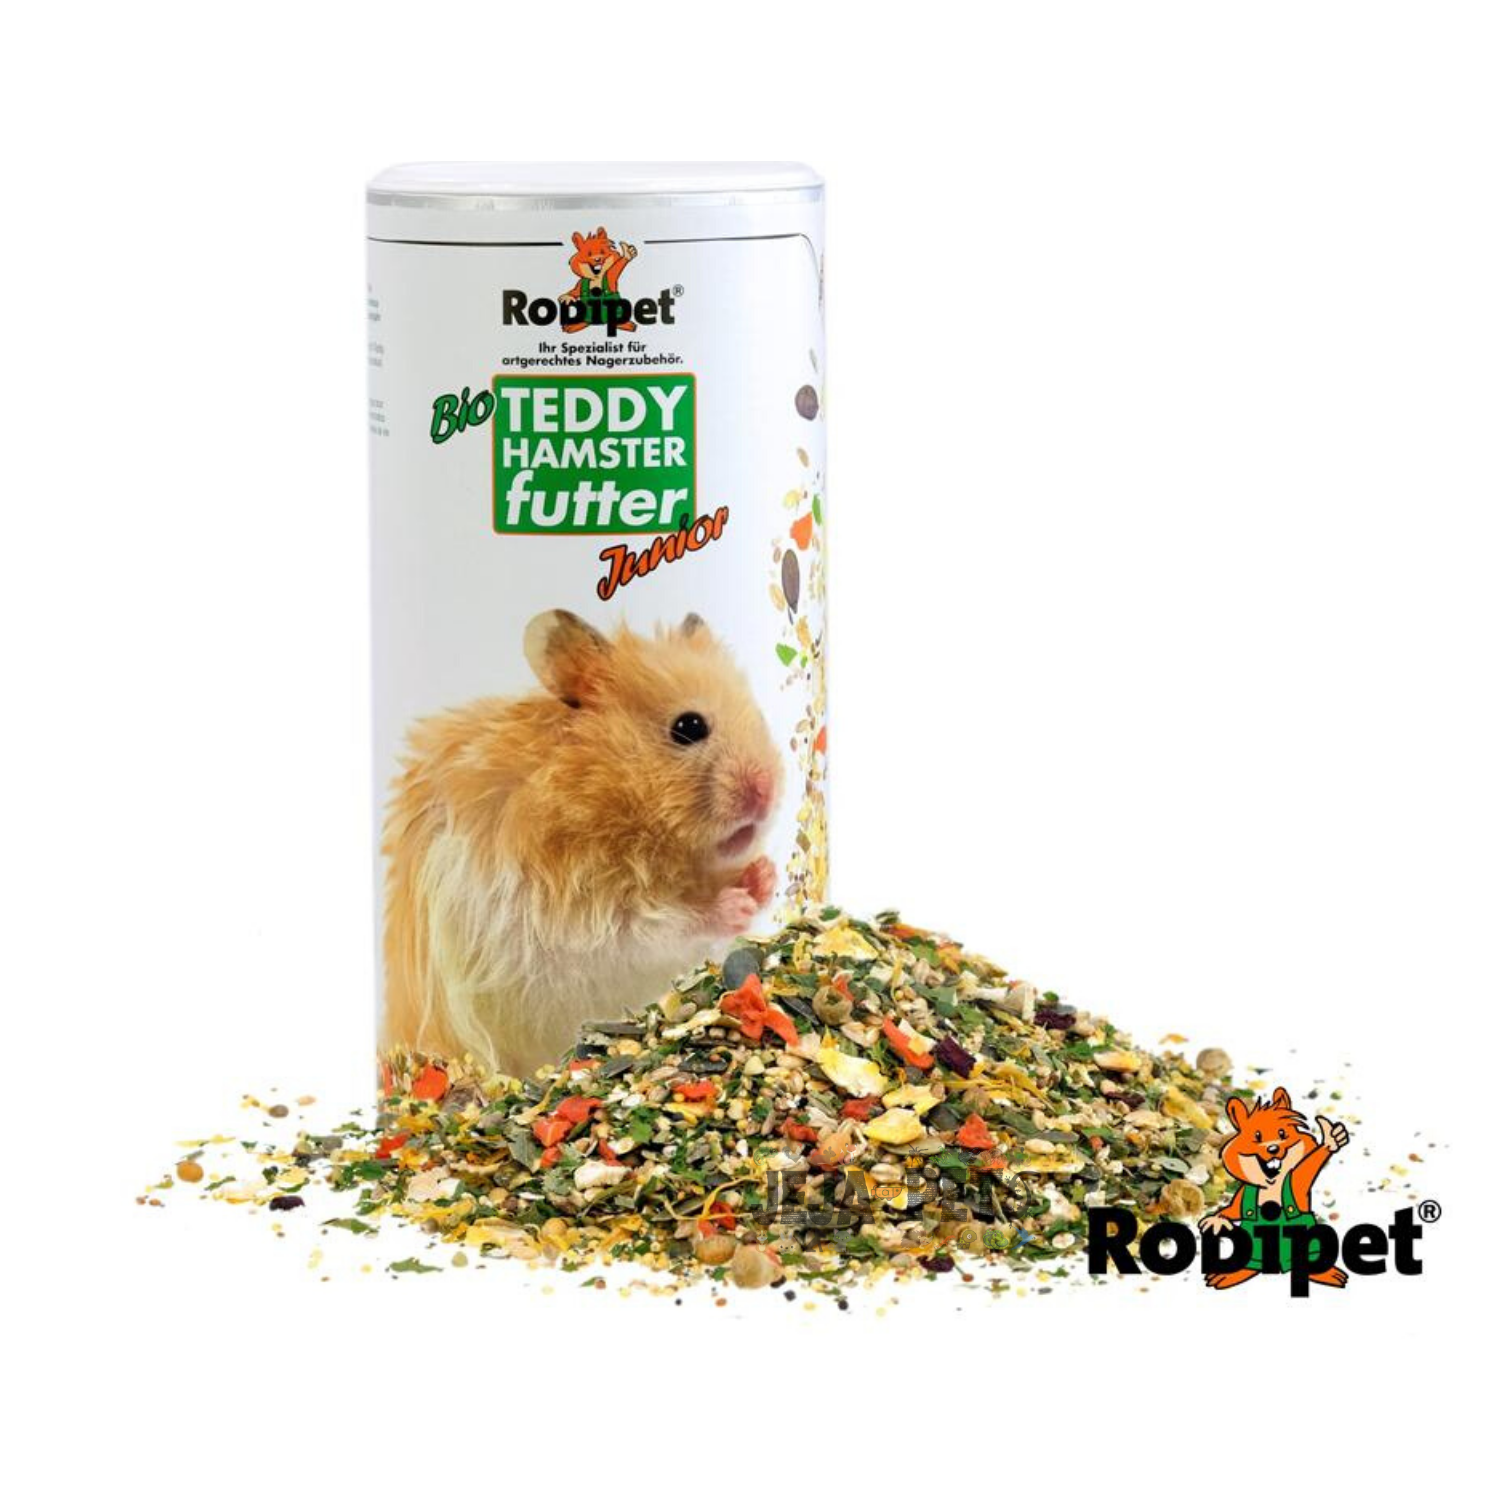 "Rodipet Organic Teddy Hamster Food ""JUNiOR"" - 500g"